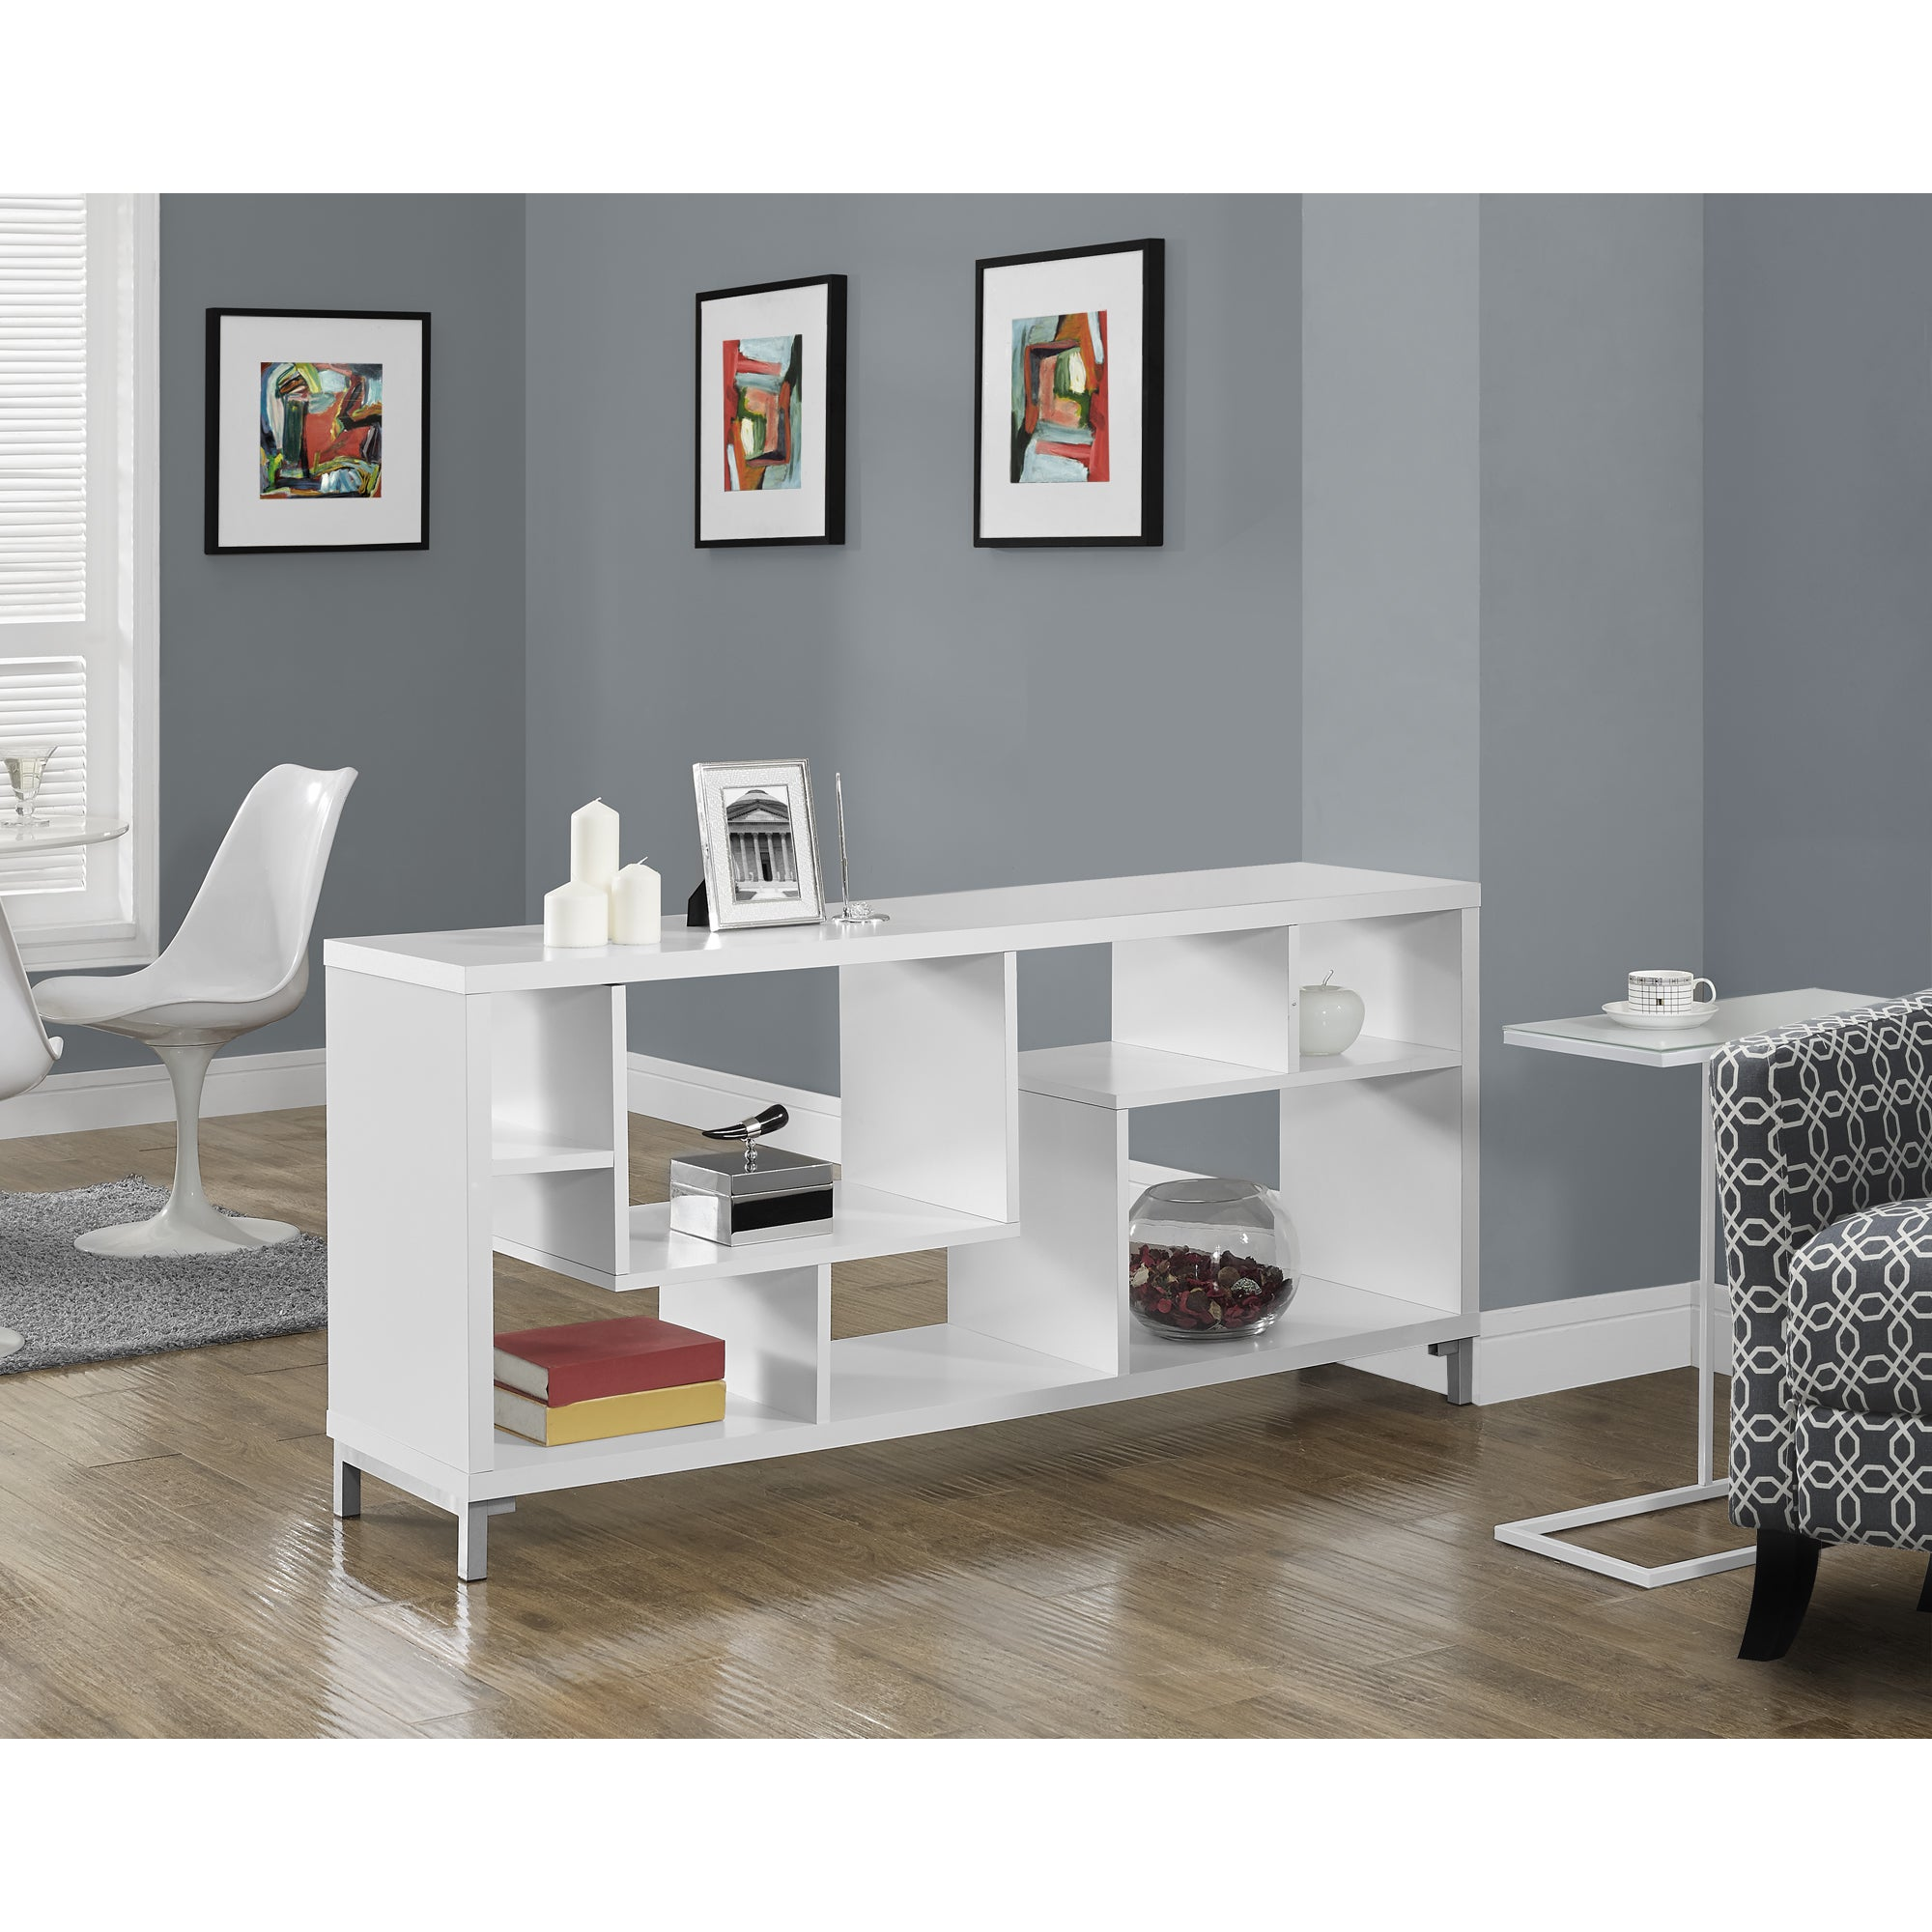 Shop White Hollow core 60 inch TV Console